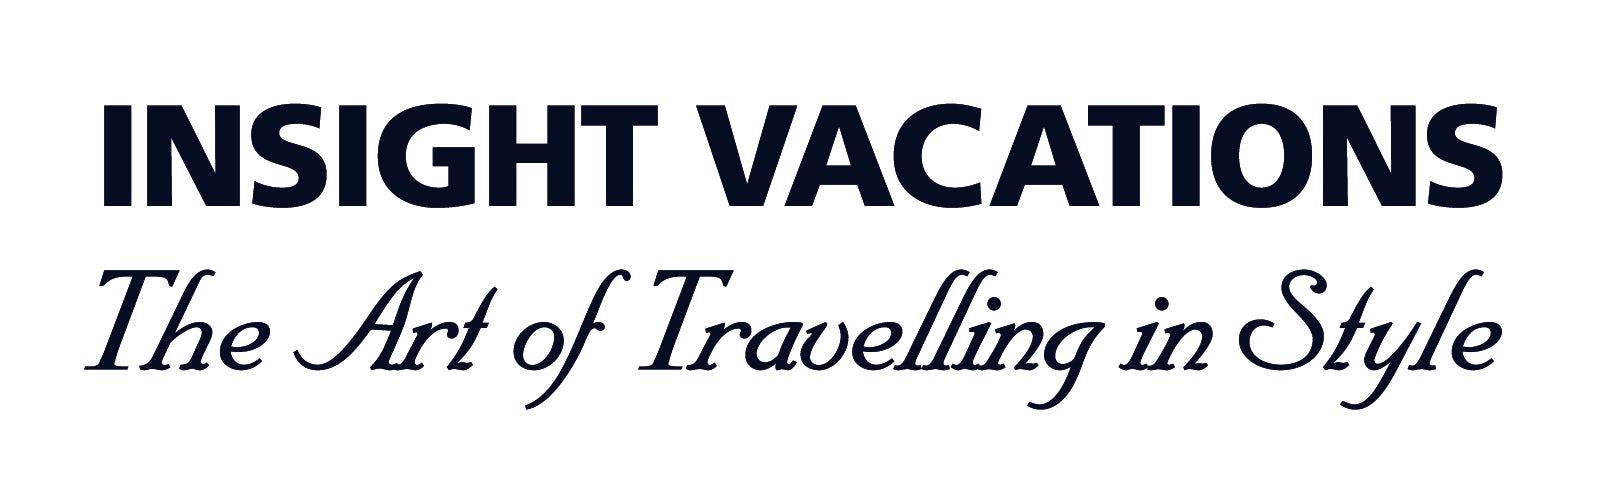 Insight Vacations - The Art of Travelling in Style